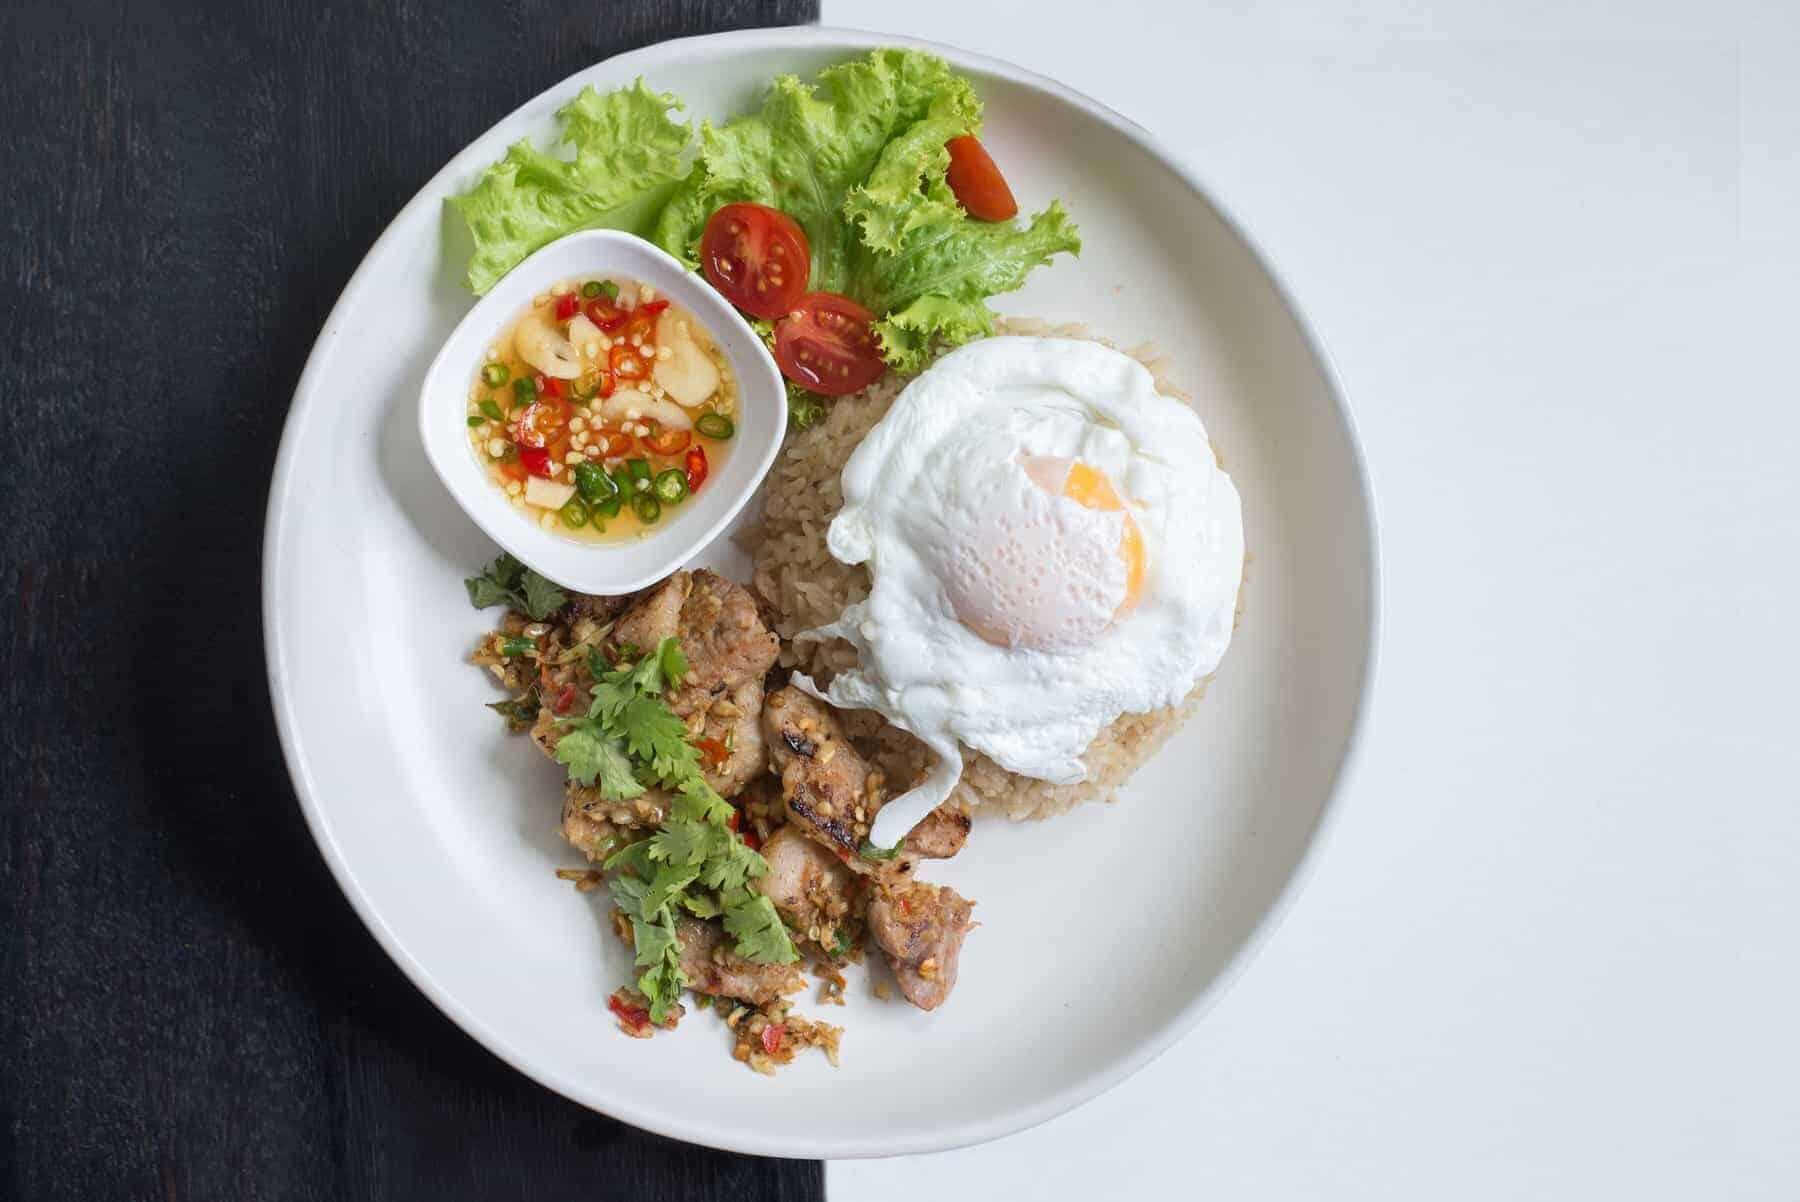 Fried rice with pork and eggs